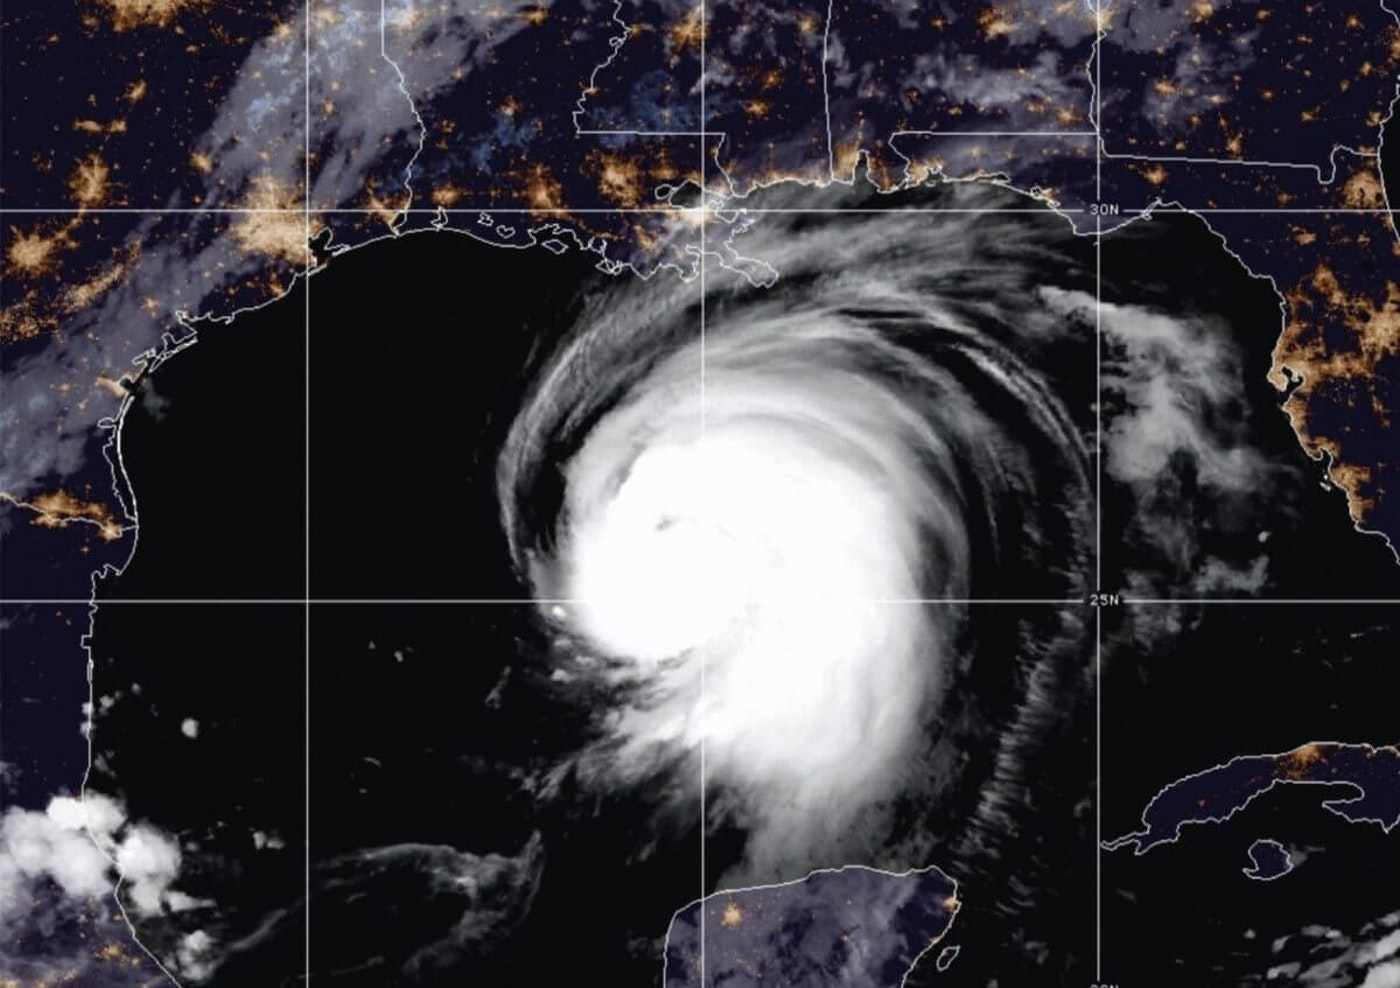 """This satellite image released by the National Oceanic and Atmospheric Administration (NOAA) shows Hurricane Laura churning in the Gulf of Mexico, Wednesday, Aug. 26, 2020. Forecasters say Laura is rapidly intensifying and will become a """"catastrophic"""" Category 4 hurricane before landfall. (NOAA via AP)"""